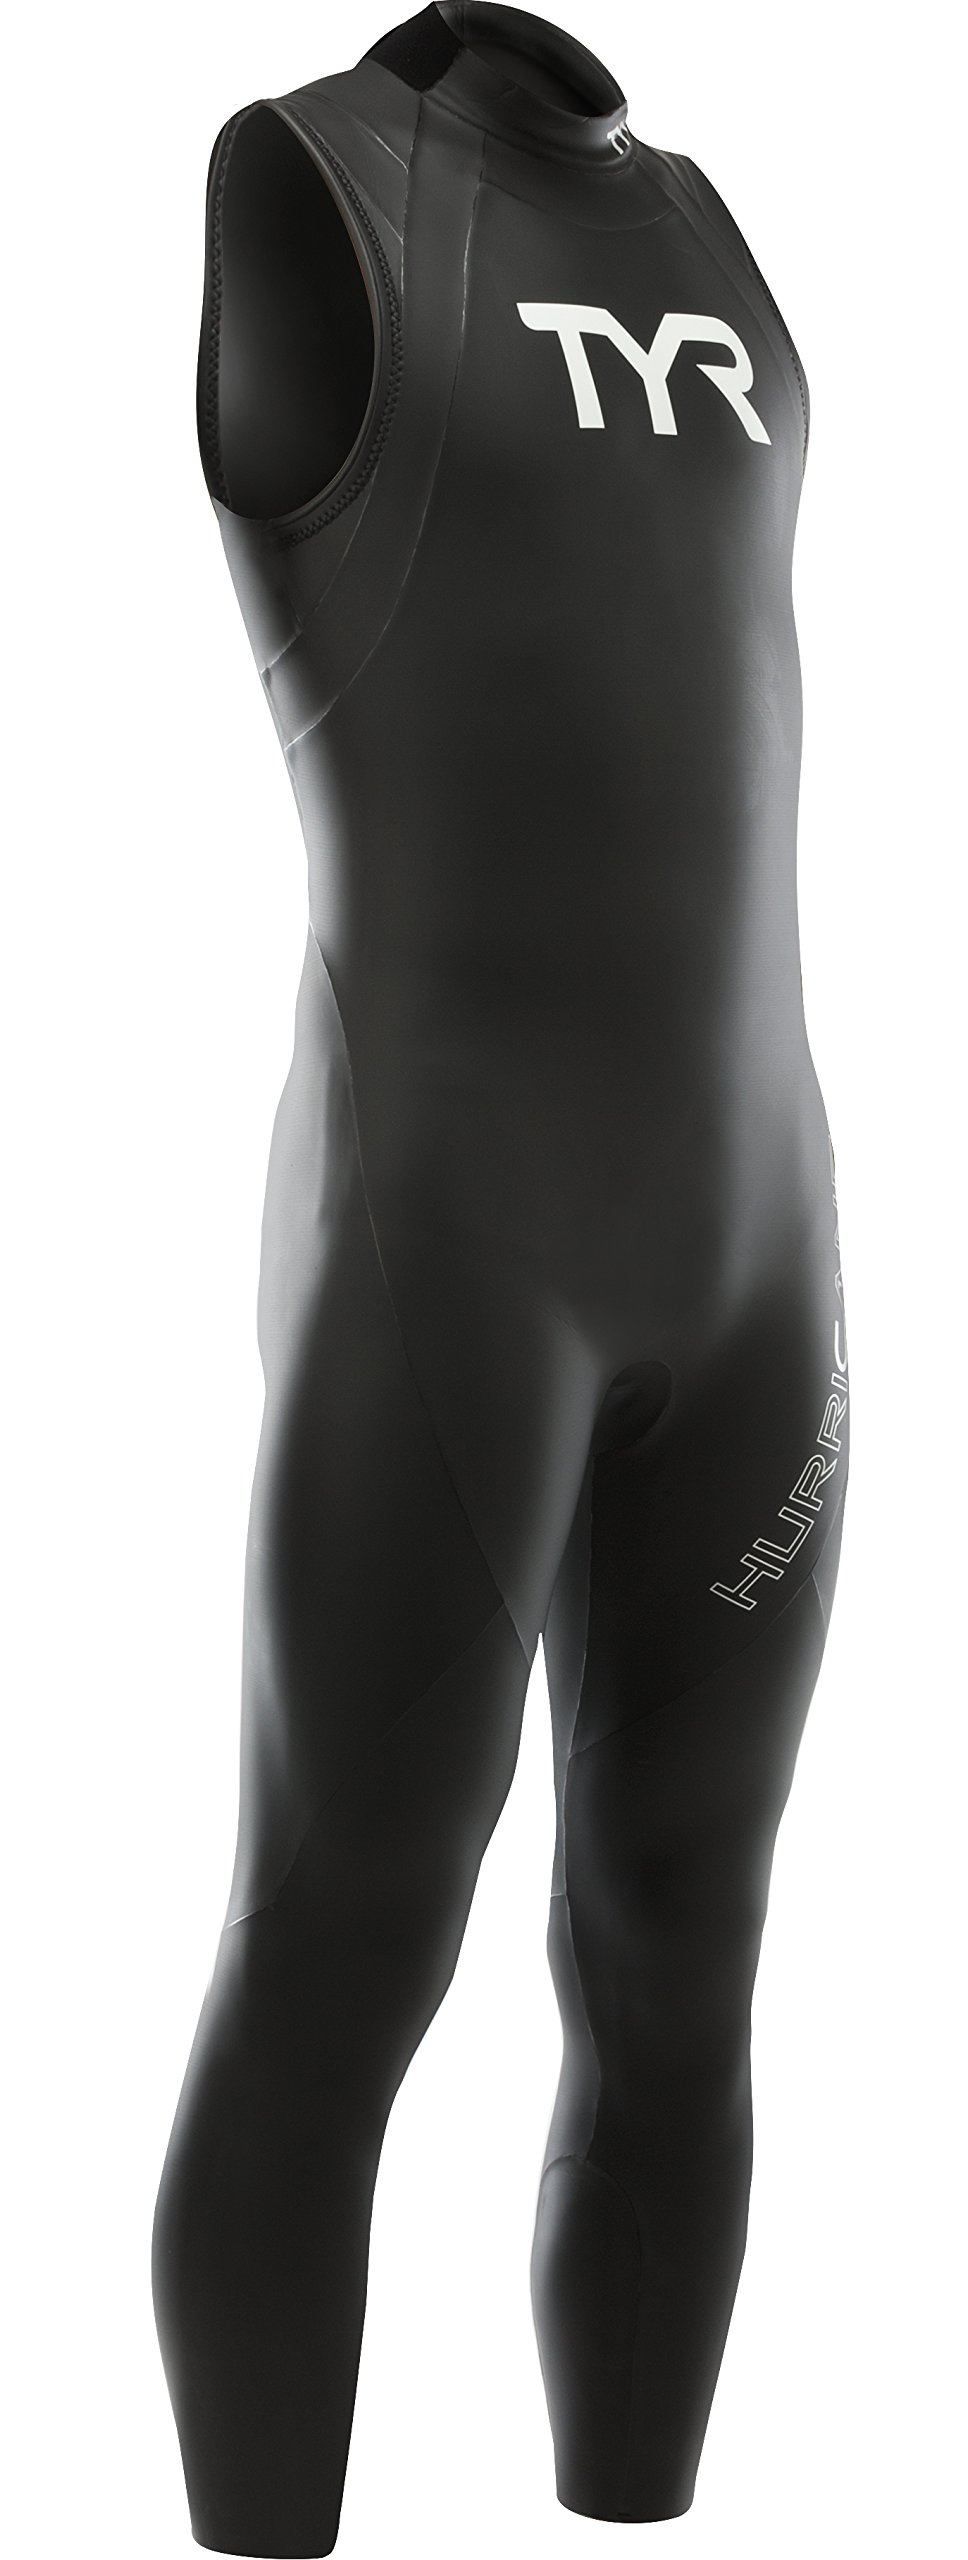 TYR Sport Men's Hurricane Sleeveless Wetsuit Category 1, Black/White, Medium